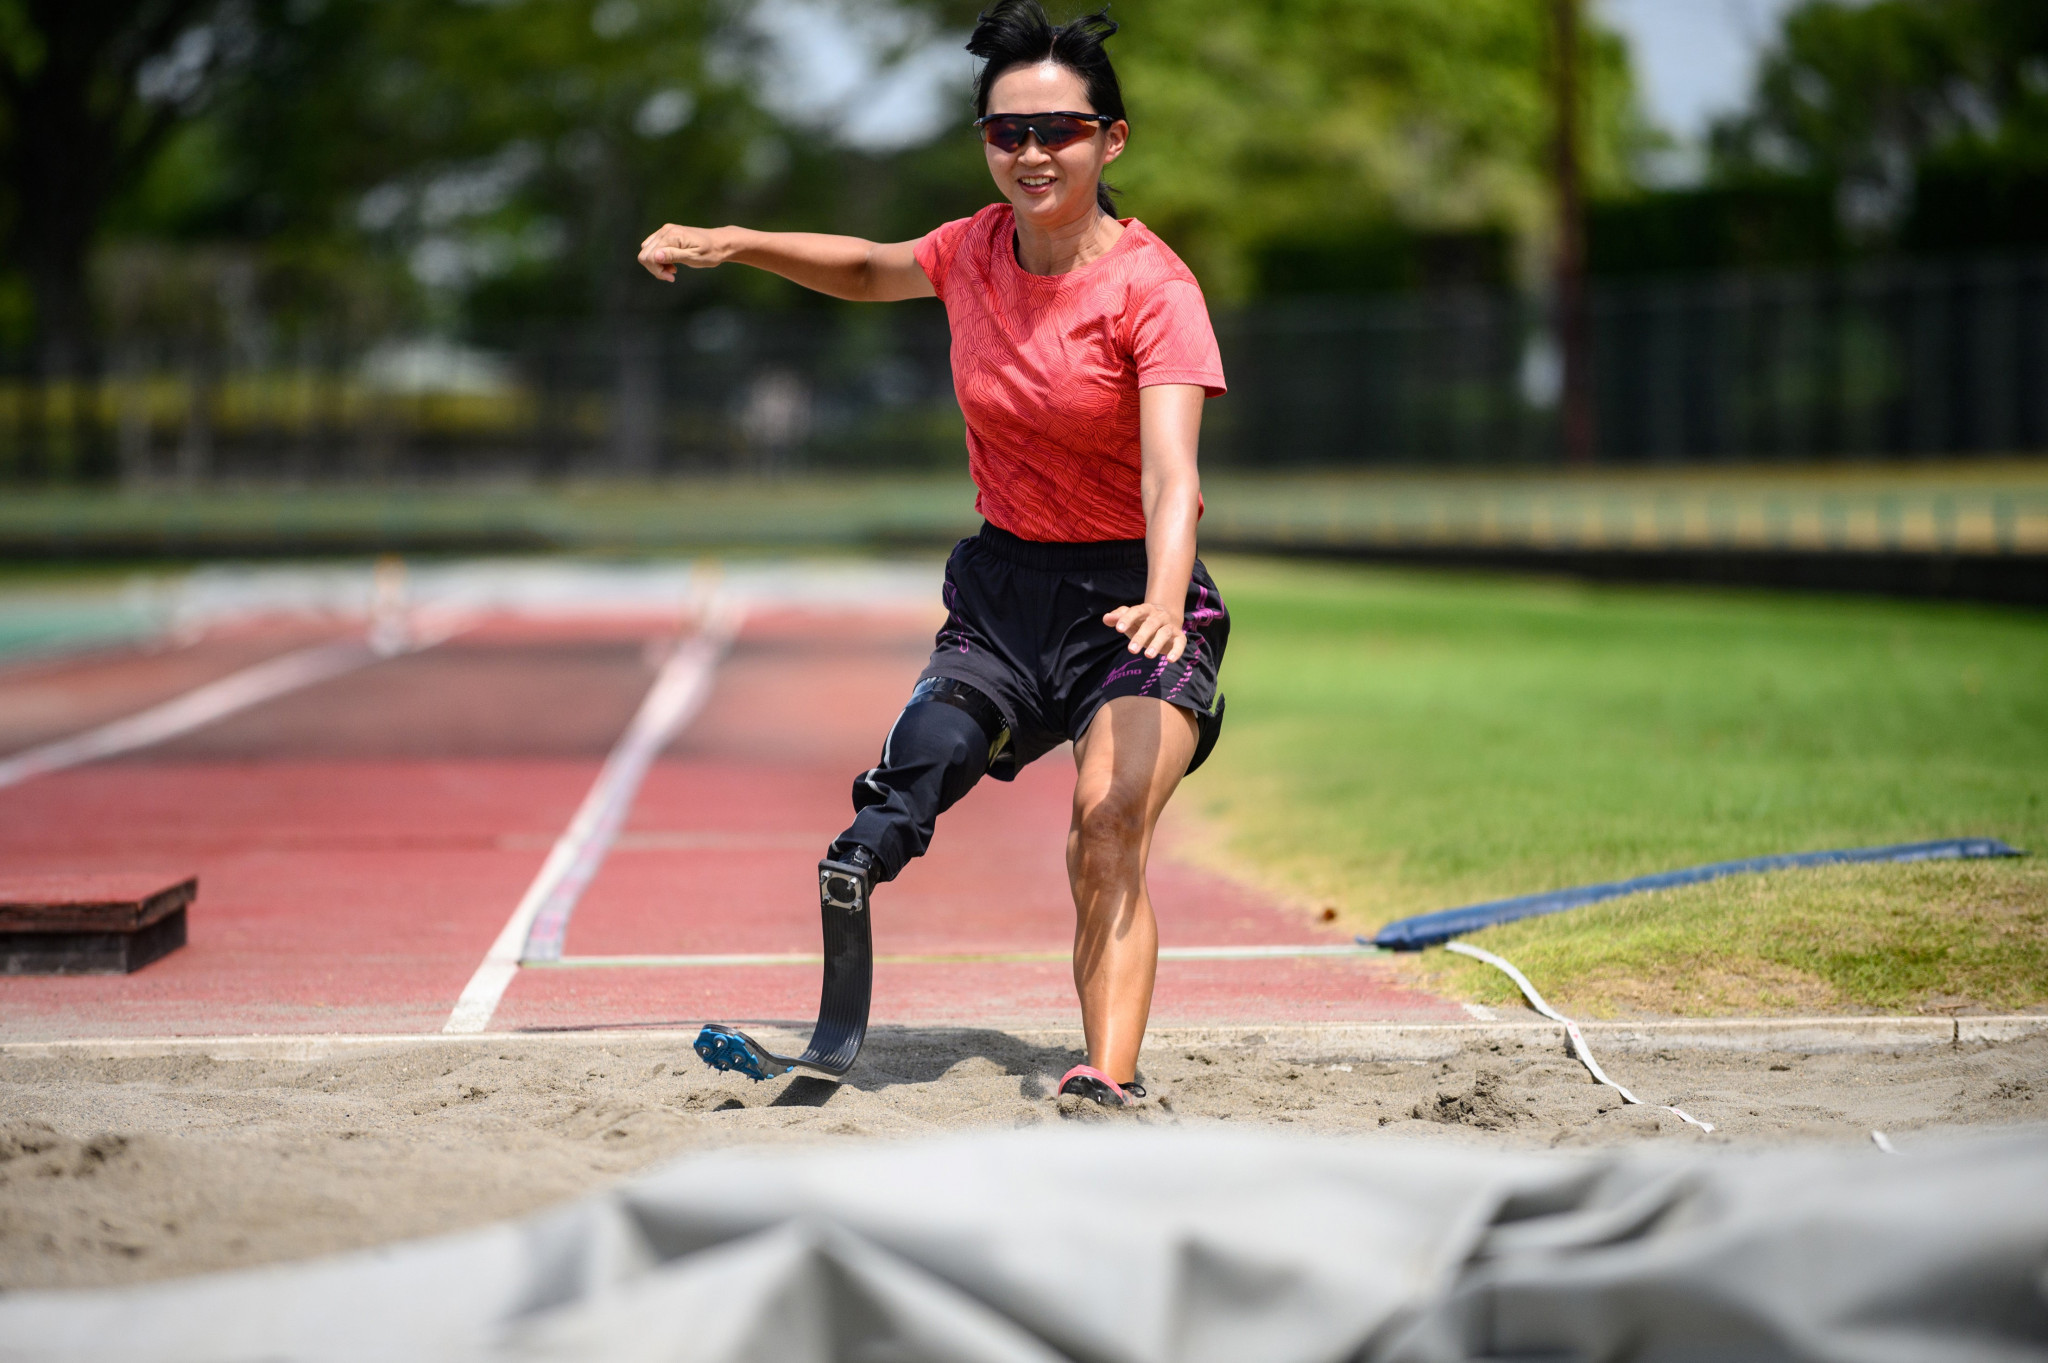 Murakami believes Tokyo 2020 can improve perception of disabled people in Japan